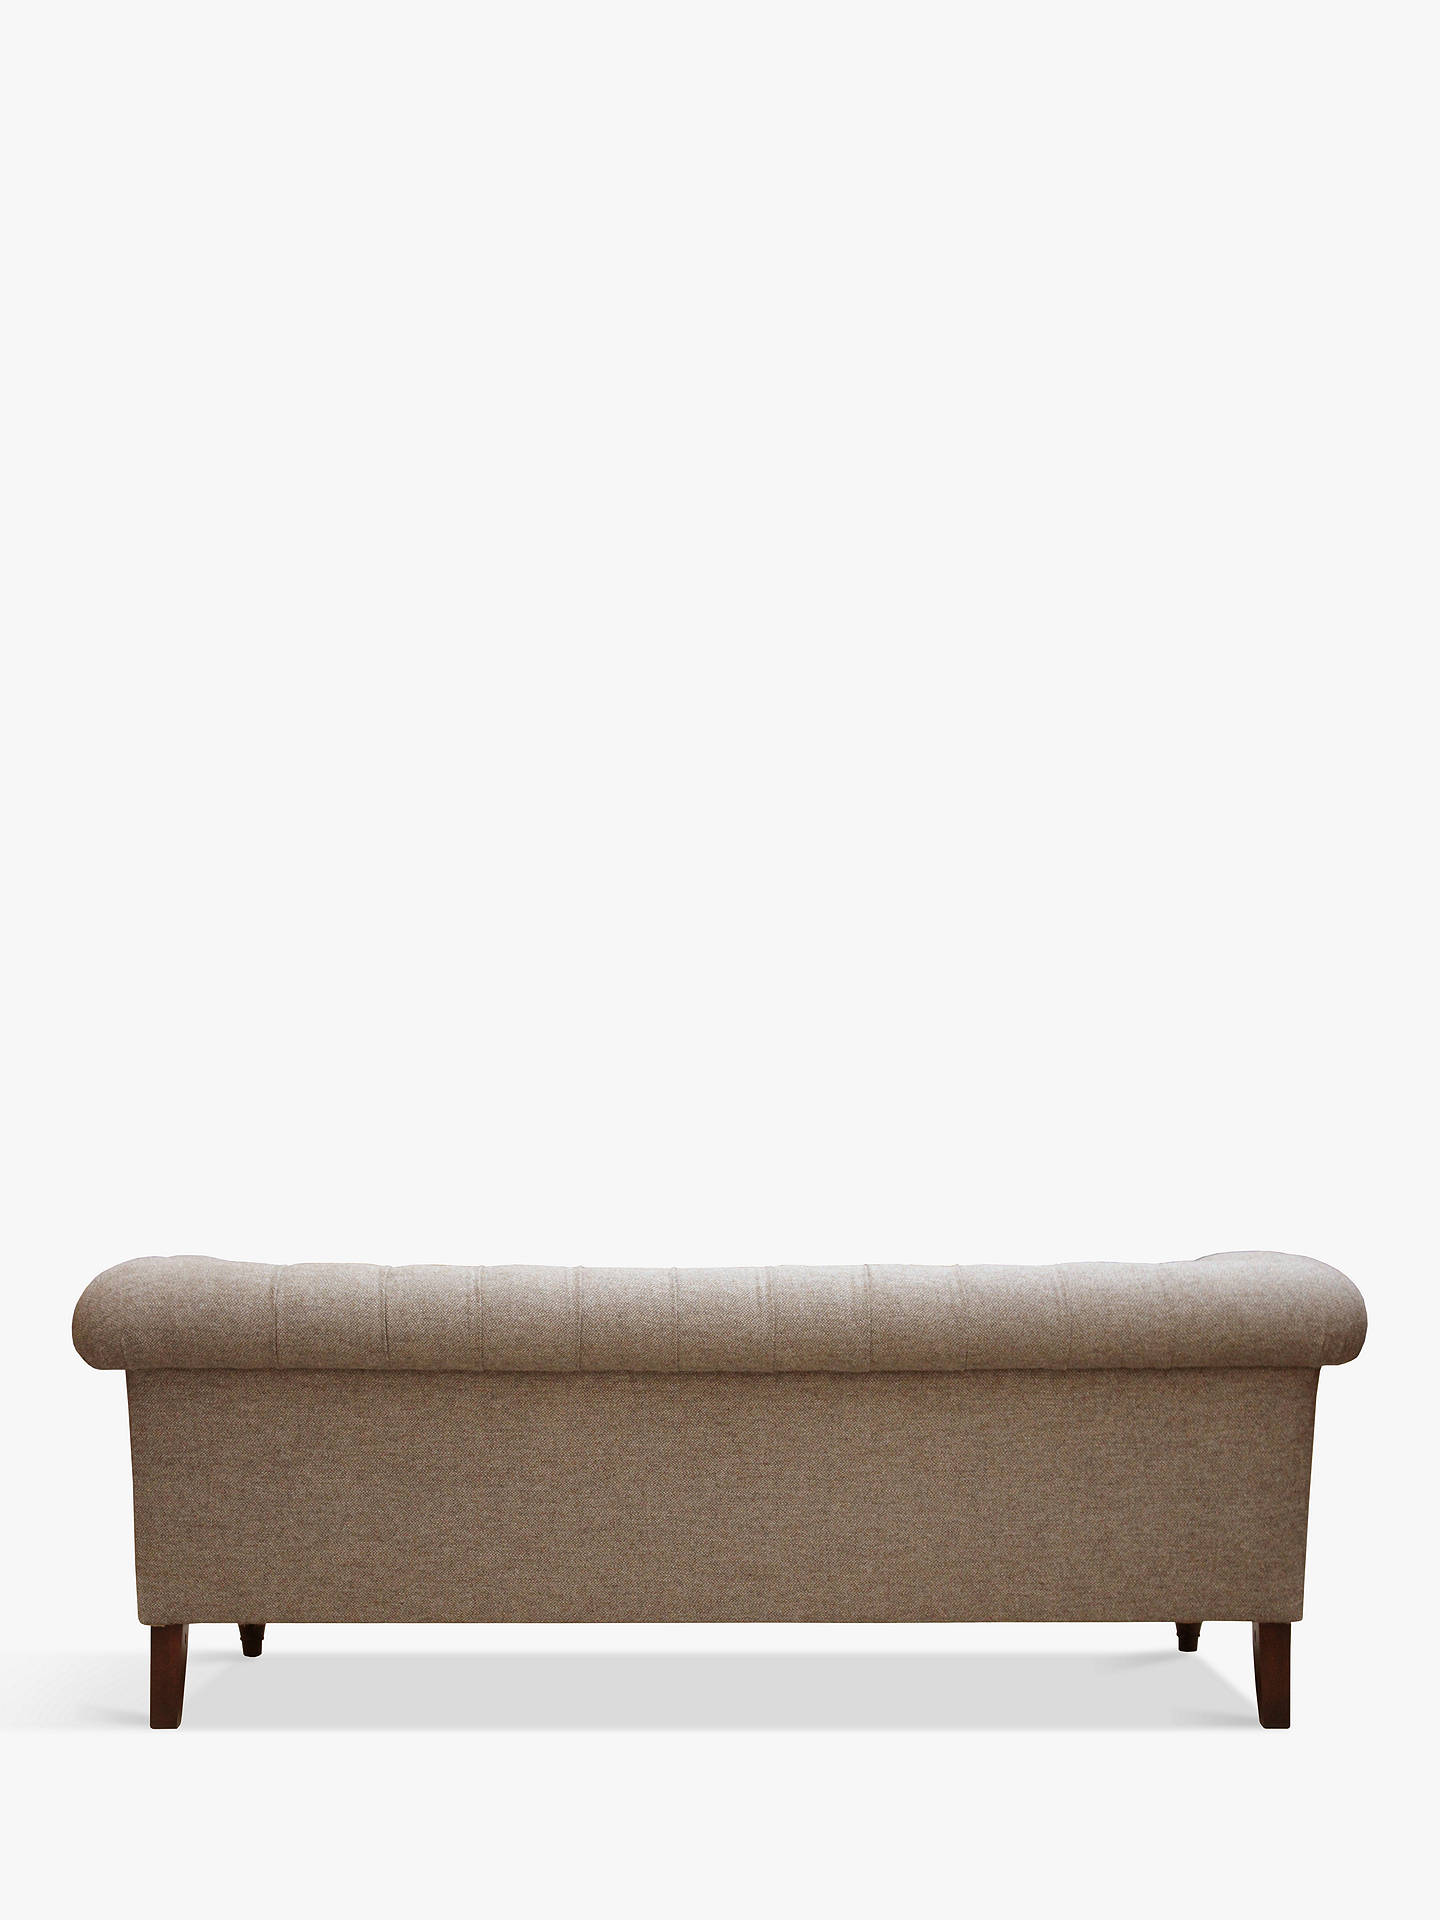 BuyTetrad Gleneagles Grand 4 Seater Sofa, Harris Tweed Heather with Brompton Tan Piping Online at johnlewis.com